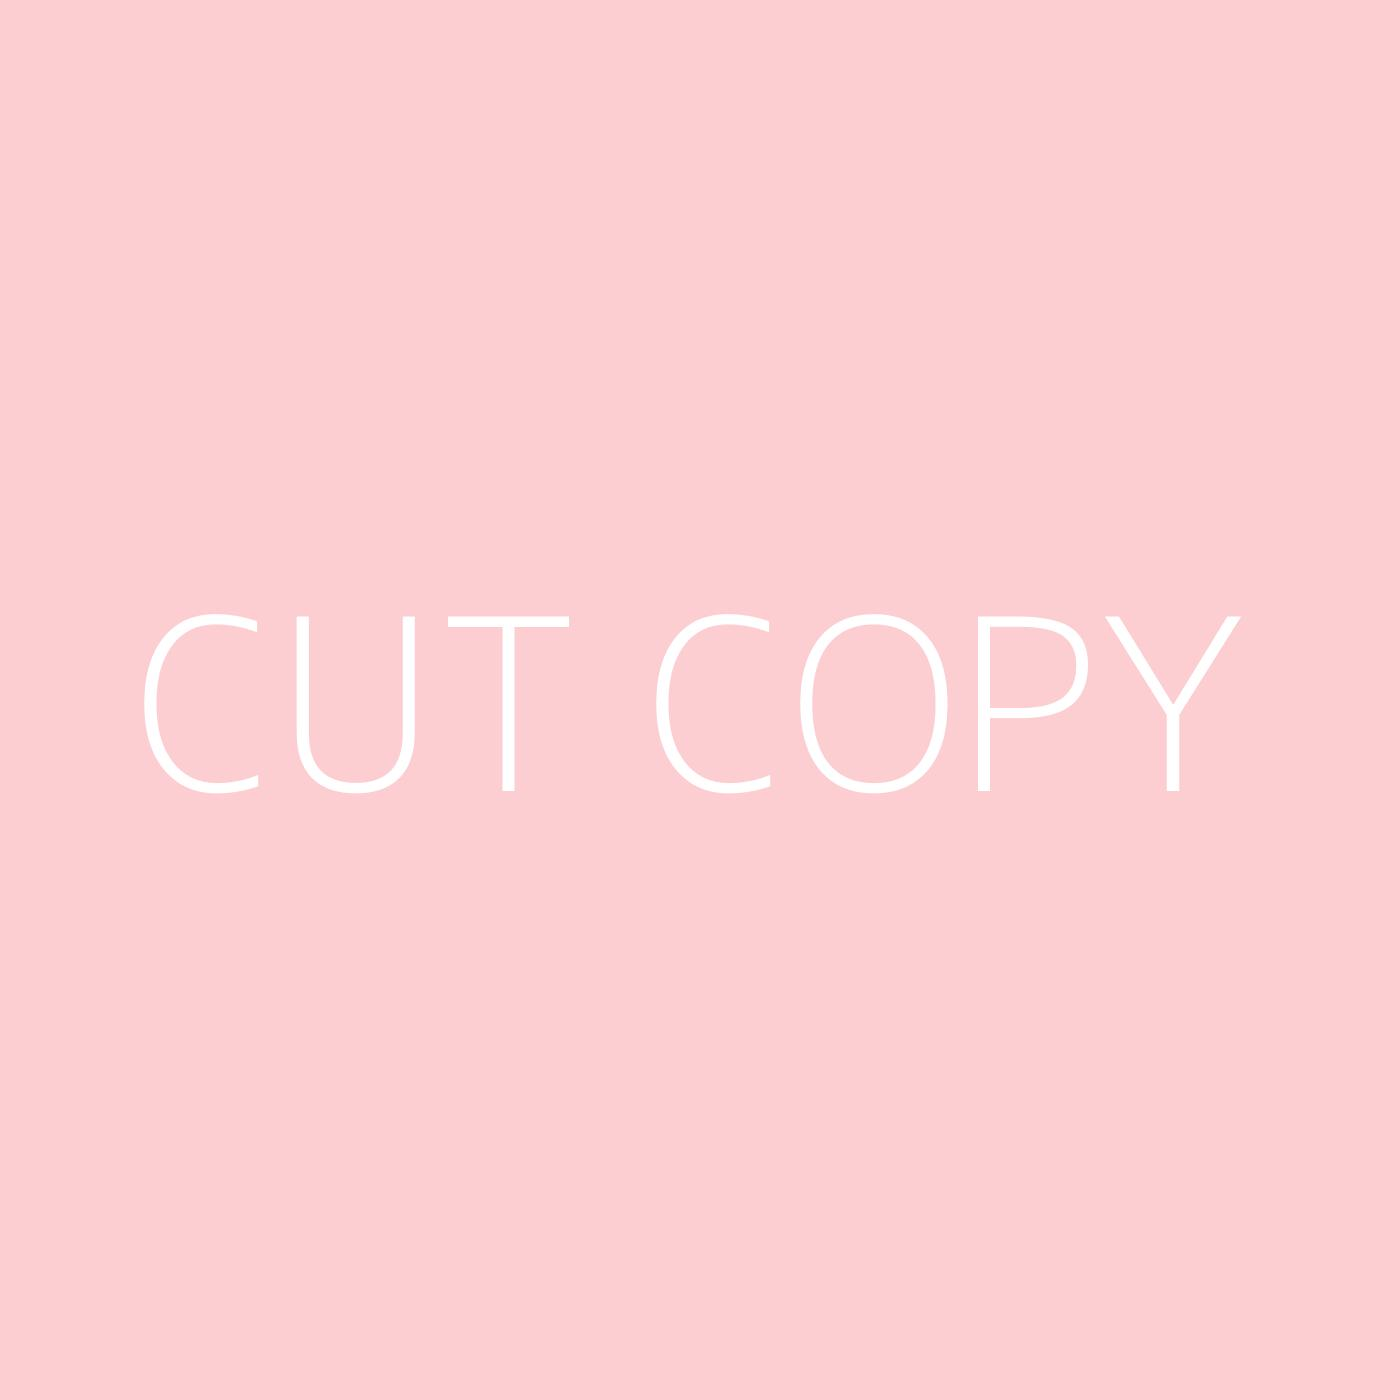 Cut Copy Playlist Artwork